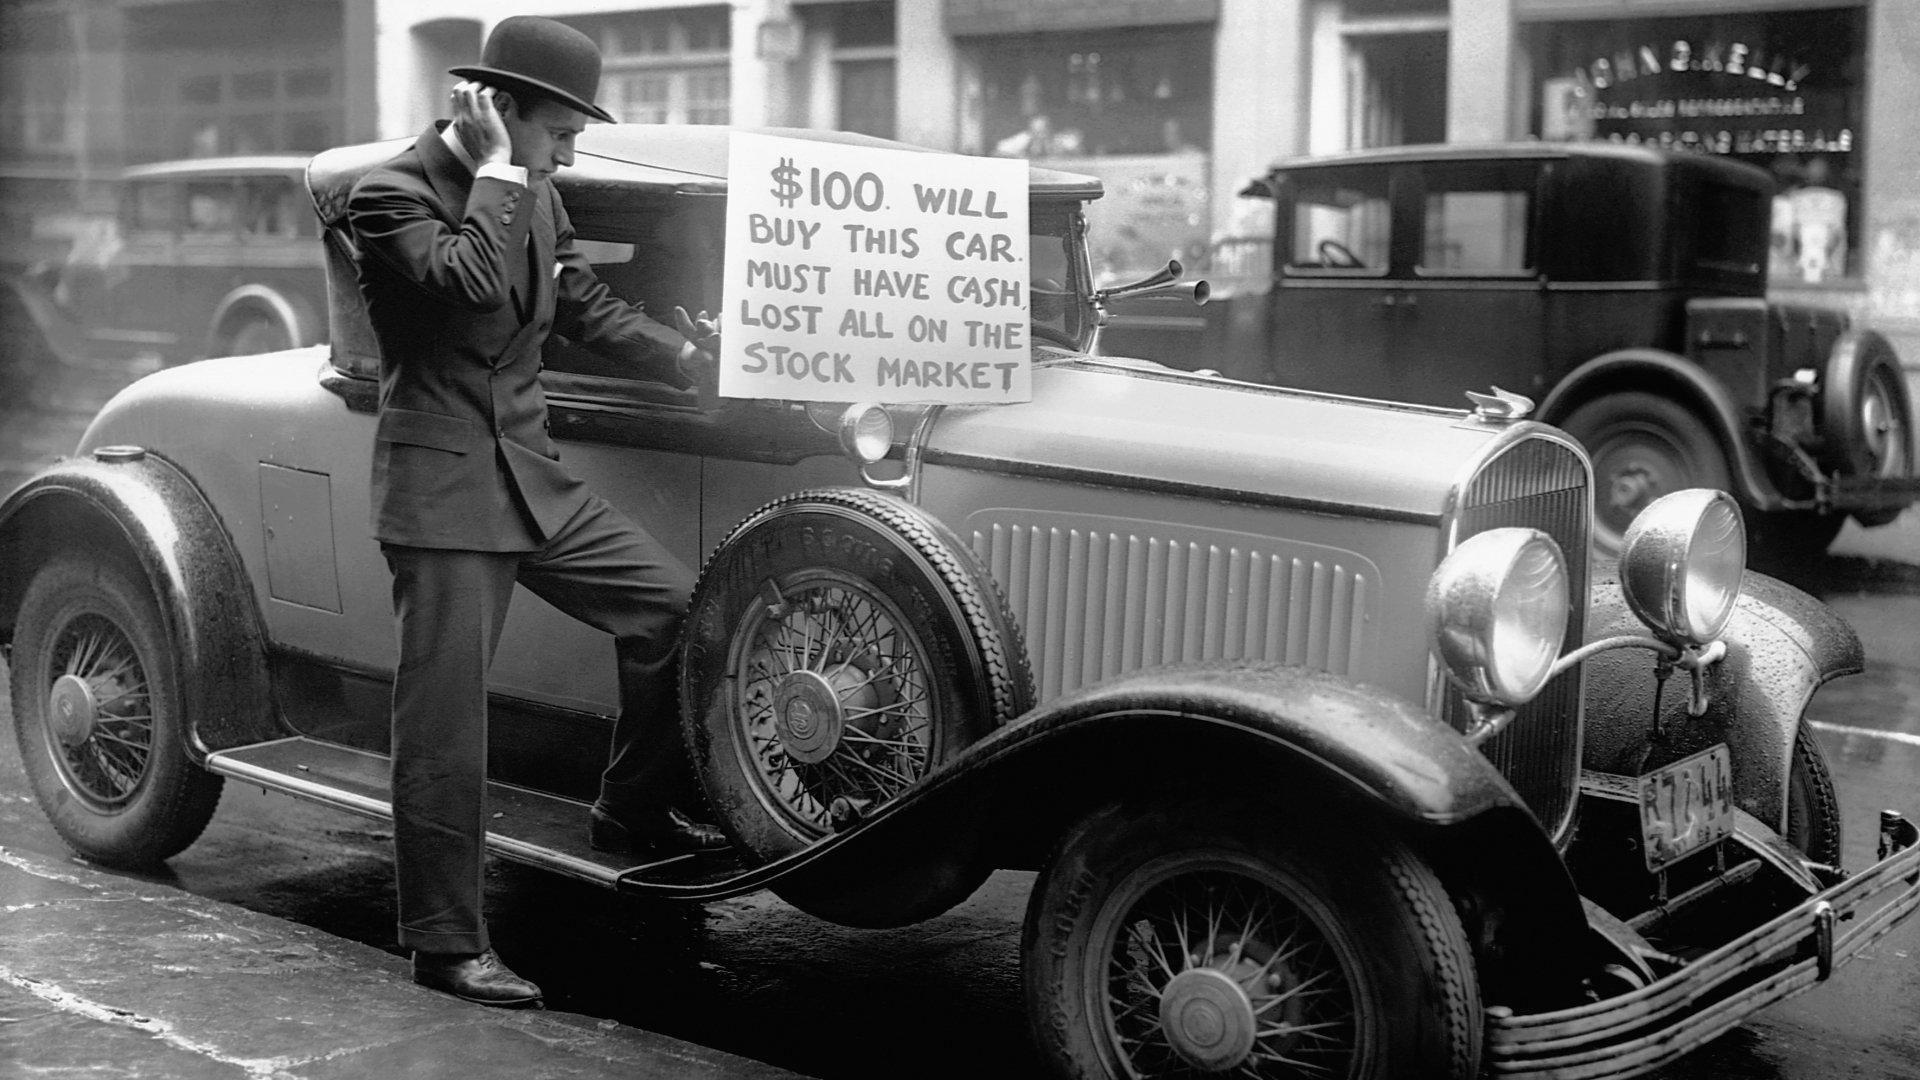 Bankrupt investor Walter Thornton trying to sell his luxury roadster for $100 cash on the streets of New York City following the 1929 stock market crash. (Credit: Bettmann Archive/Getty Images)